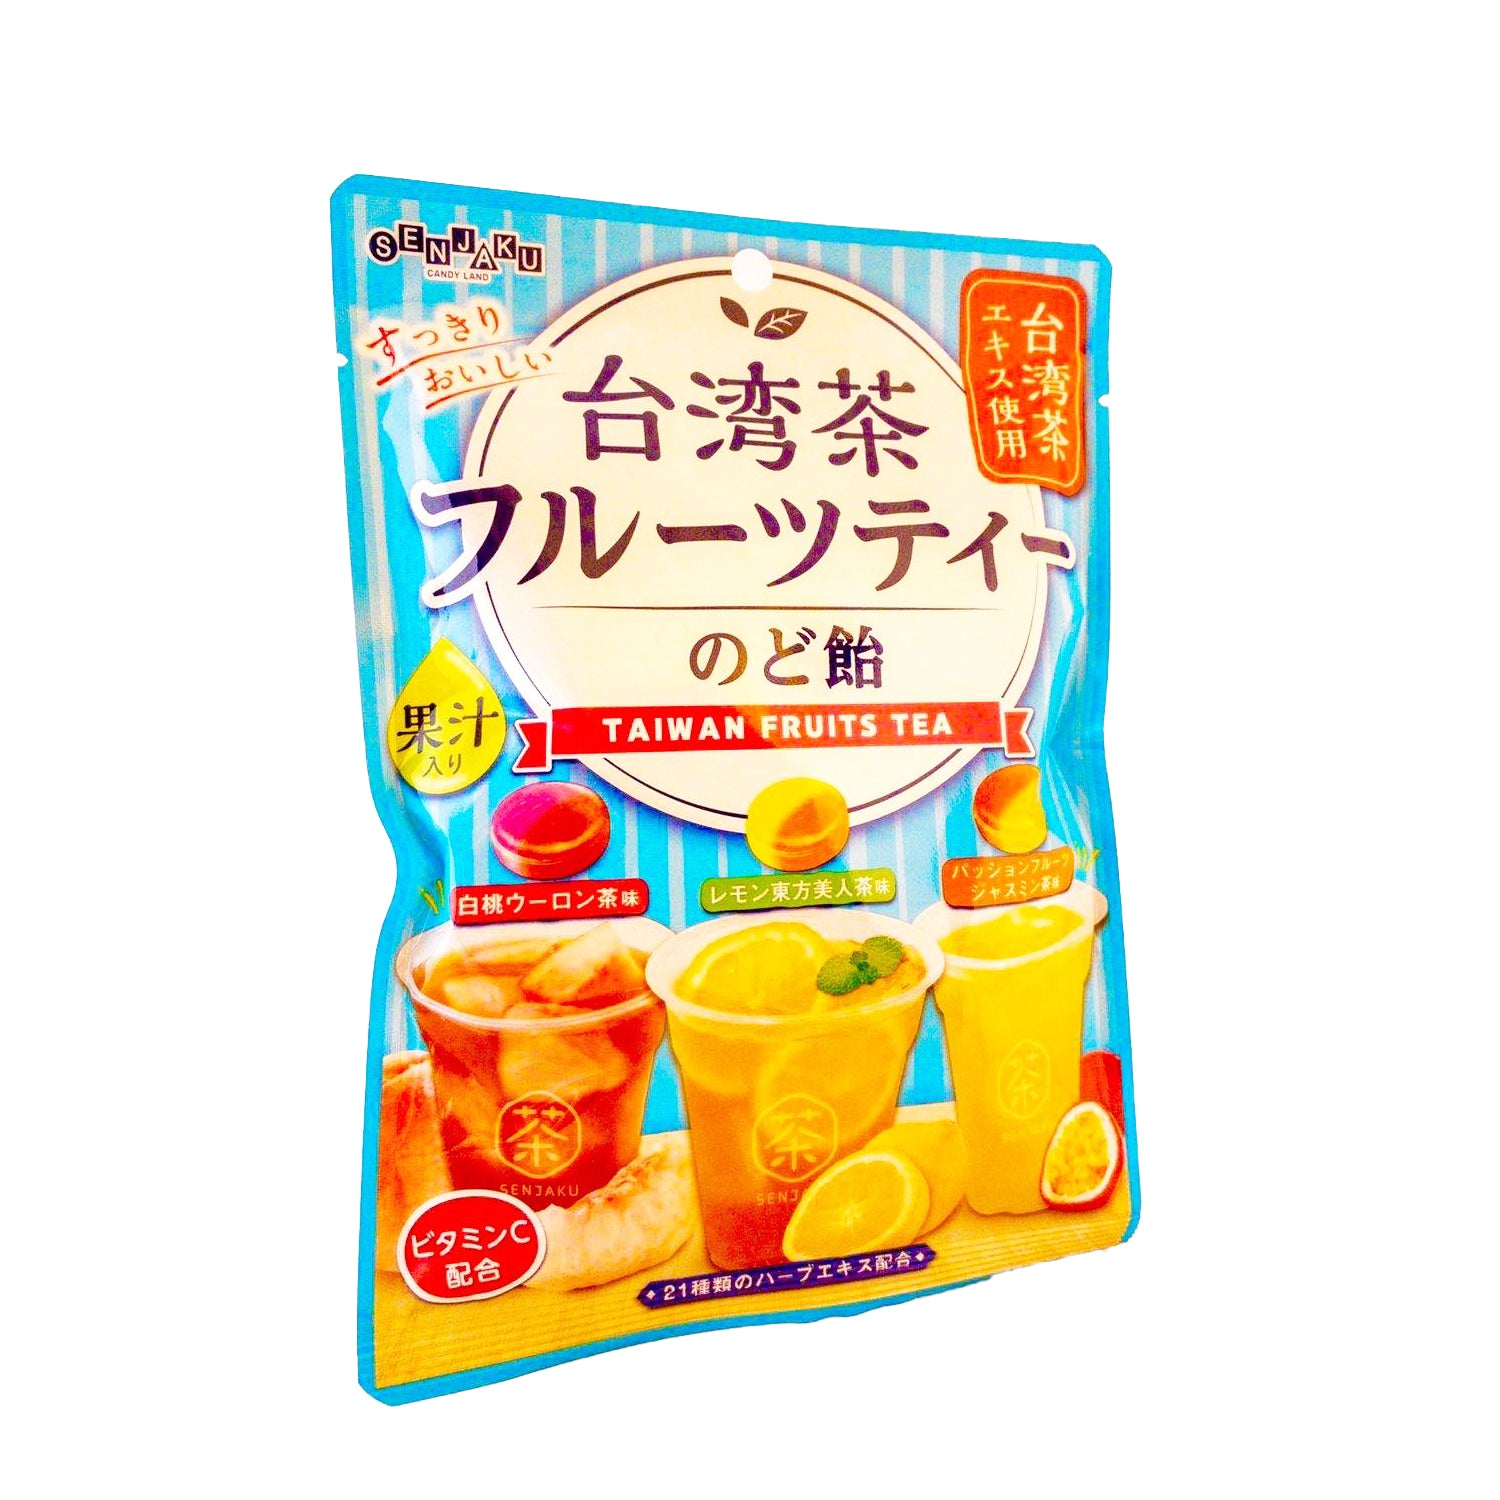 Taiwancha Fruit Tea Nodoame Candy 2.68oz